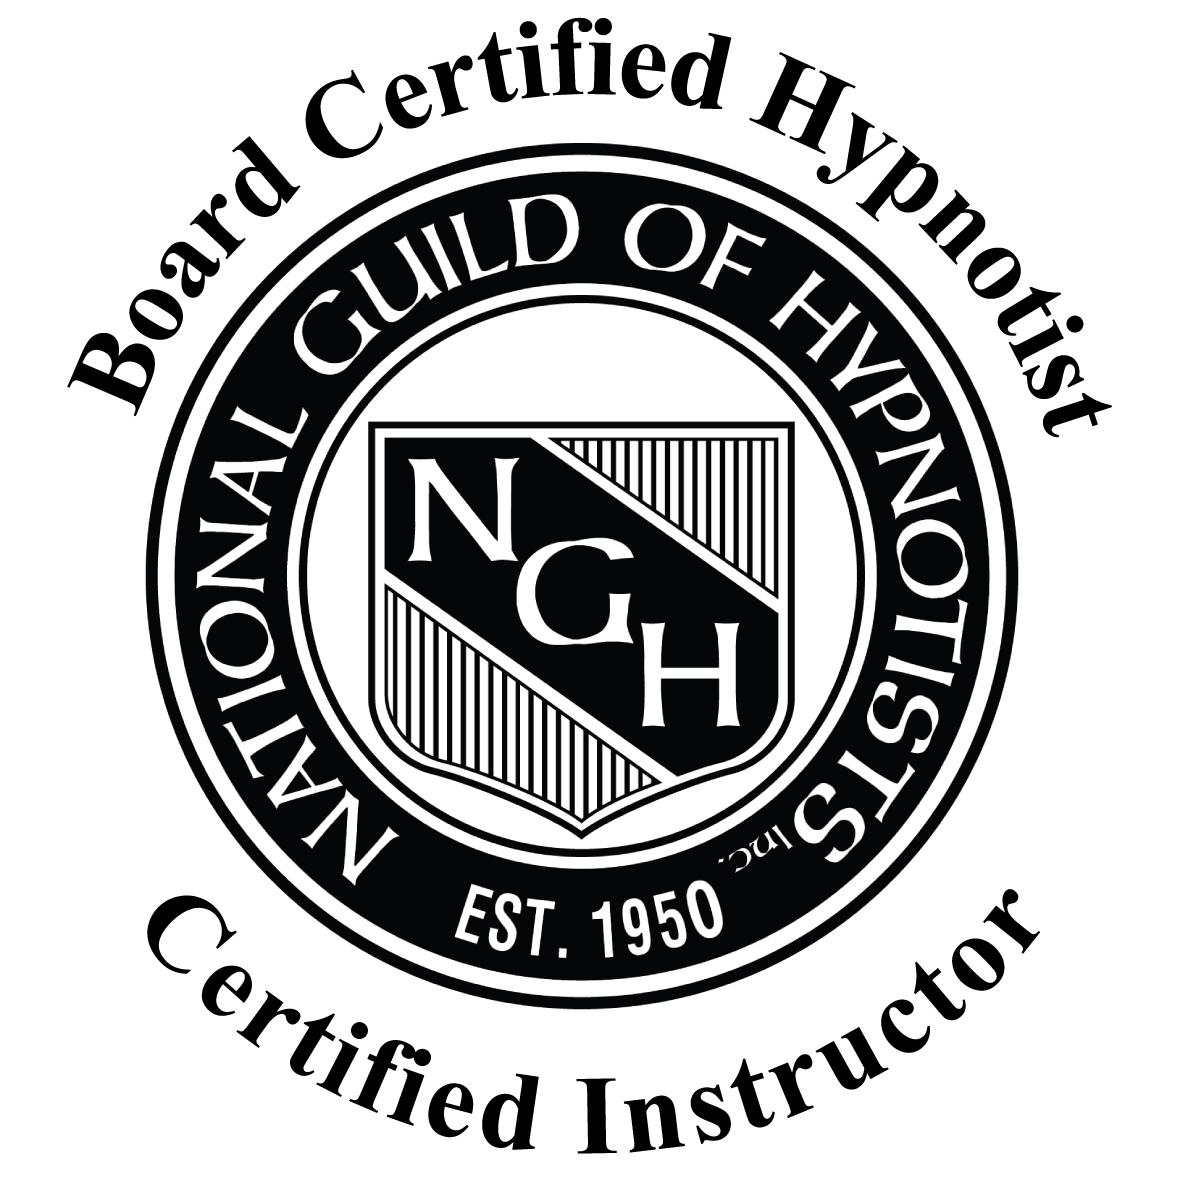 Rn nurse symbol gallery symbol and sign ideas the patient whisperers staff ngh certified instructor of hypnosis nlp practitioner a registered nurse in the biocorpaavc